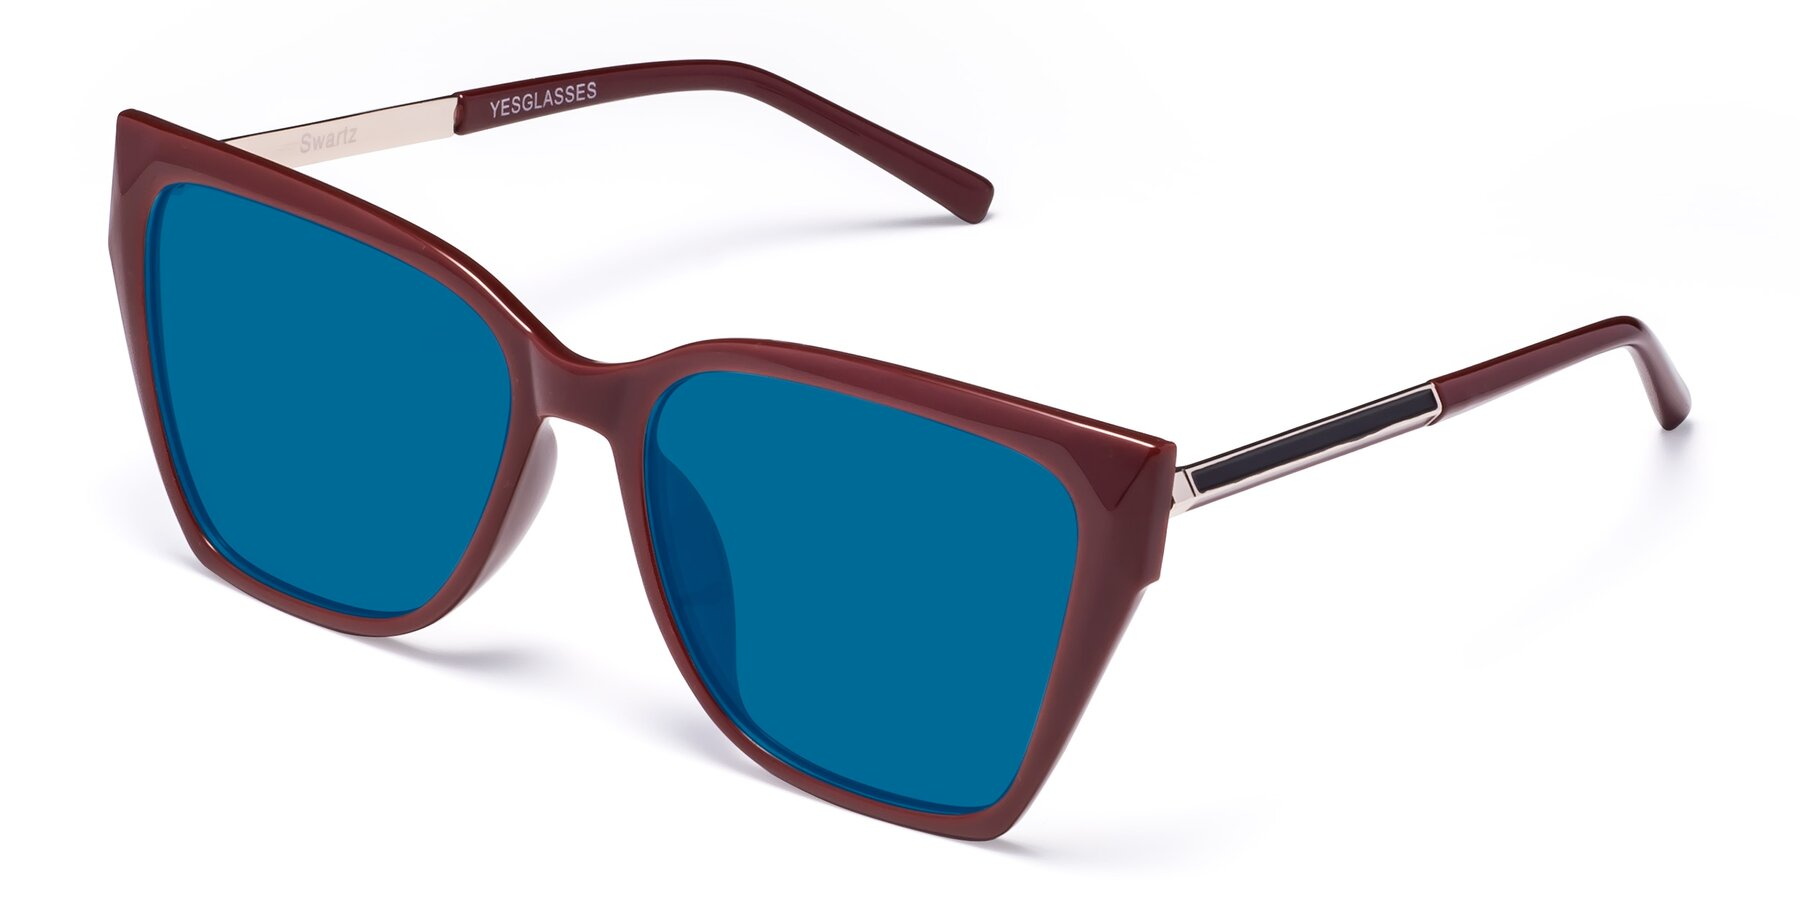 Angle of Swartz in Wine with Blue Tinted Lenses